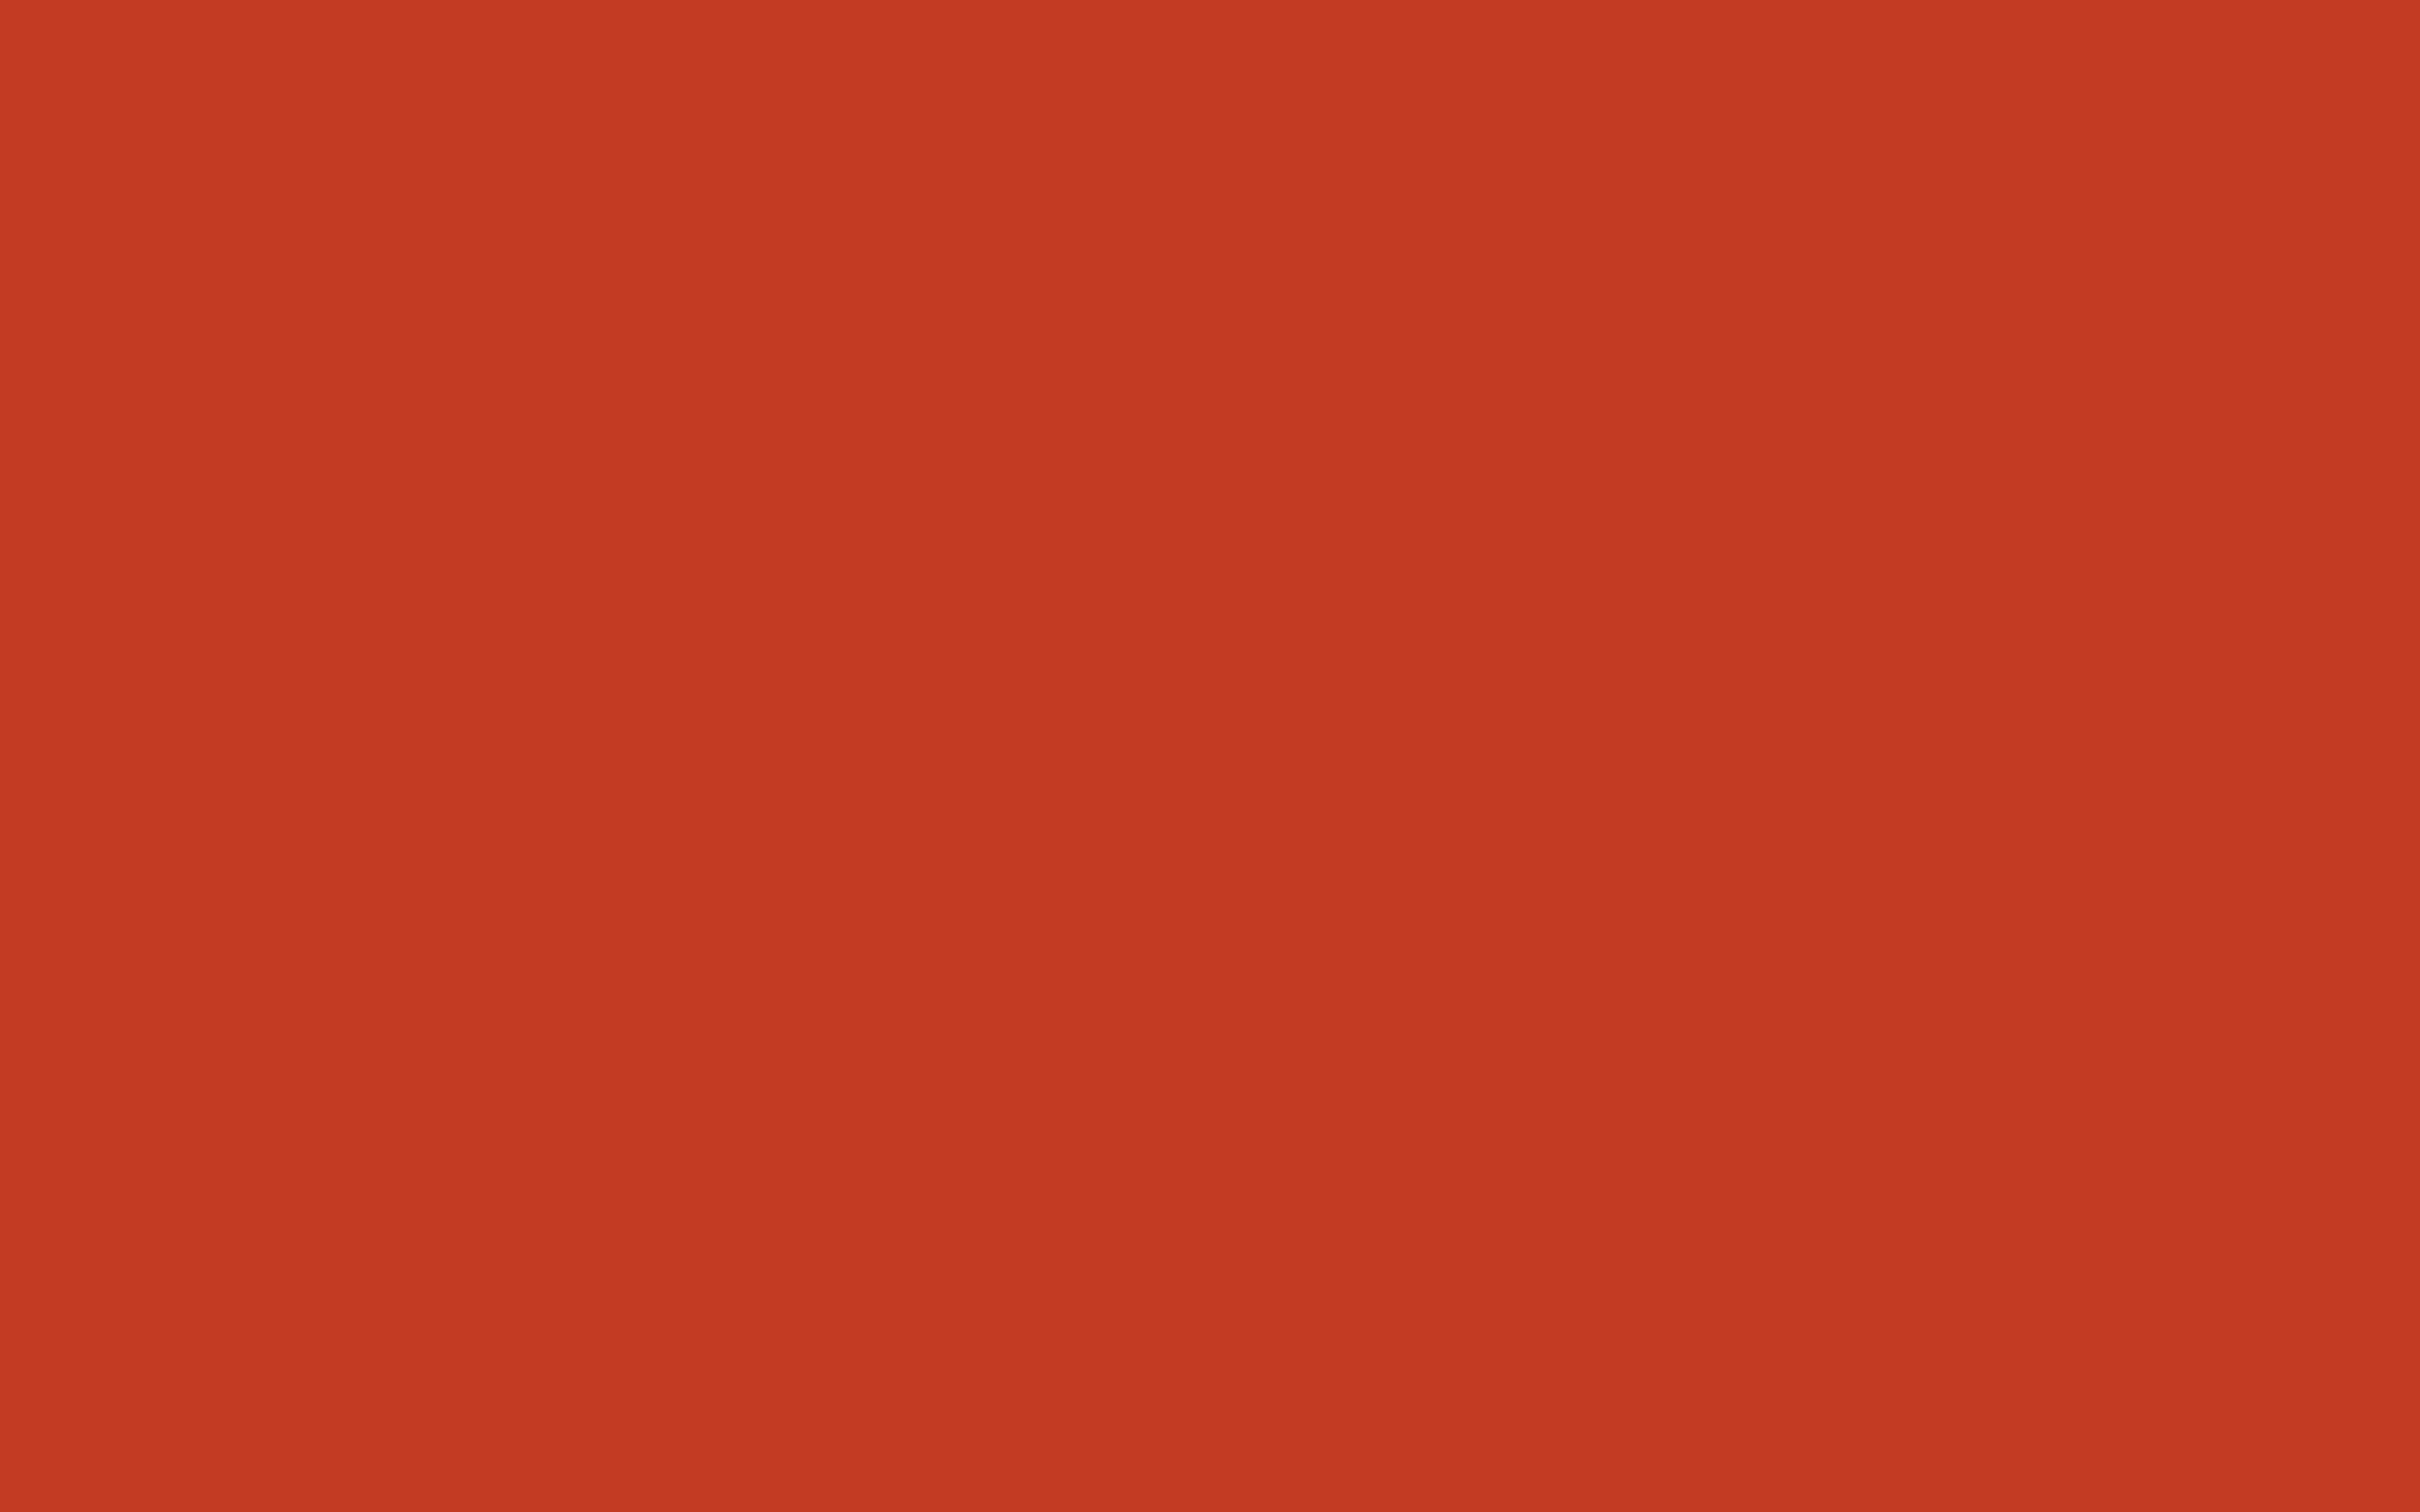 2560x1600 Dark Pastel Red Solid Color Background